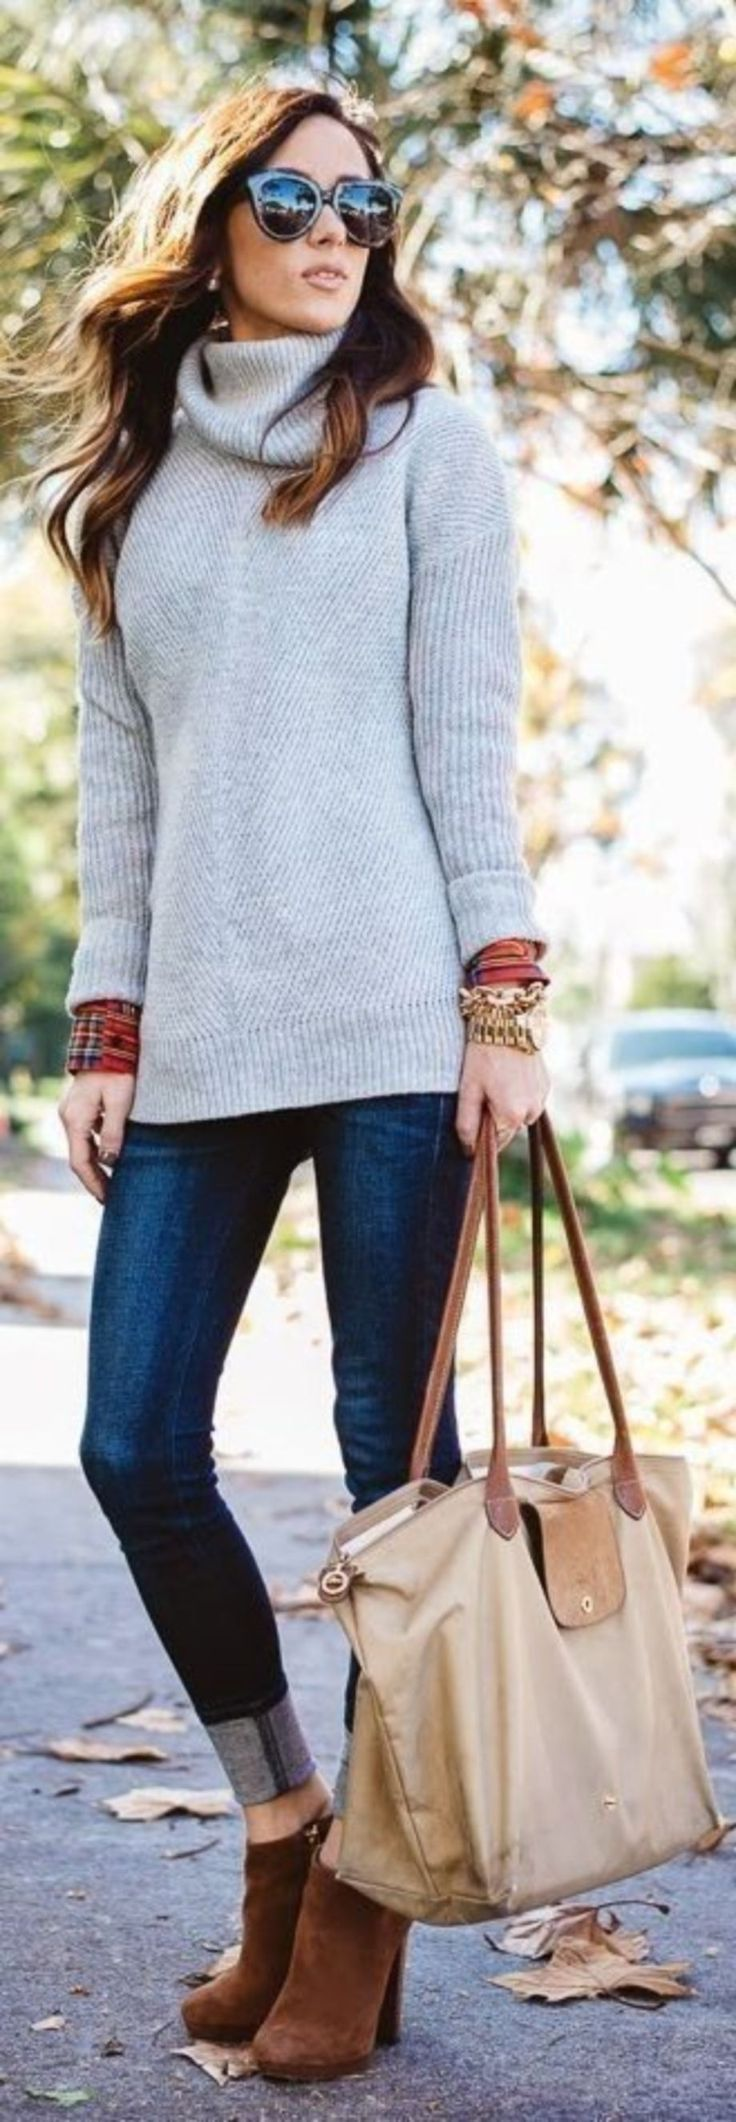 Cute idea to wear to Thanksgiving dinner. Love the ankle boots and the bag too.